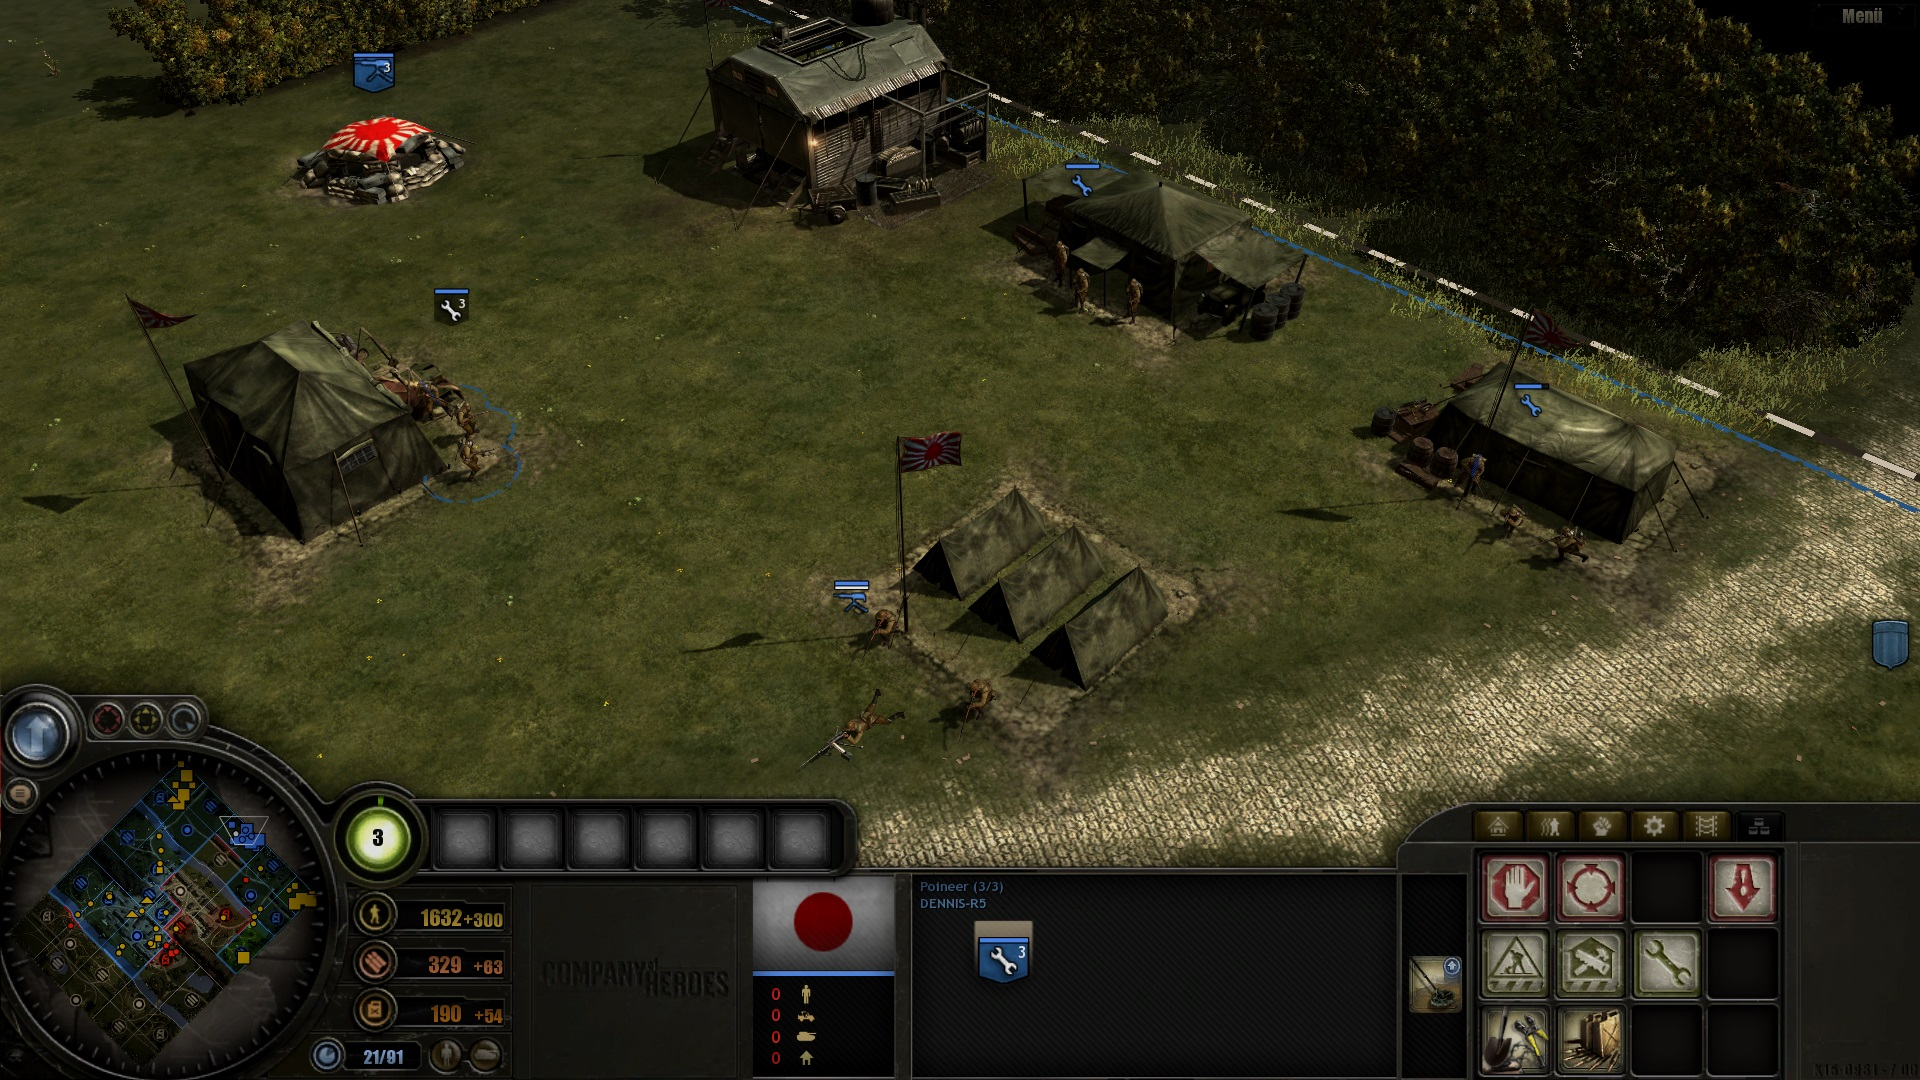 Japan Faction Image Coh Far Eastern Blitzkrieg Front Mod Fusion For Company Of Heroes Mod Db